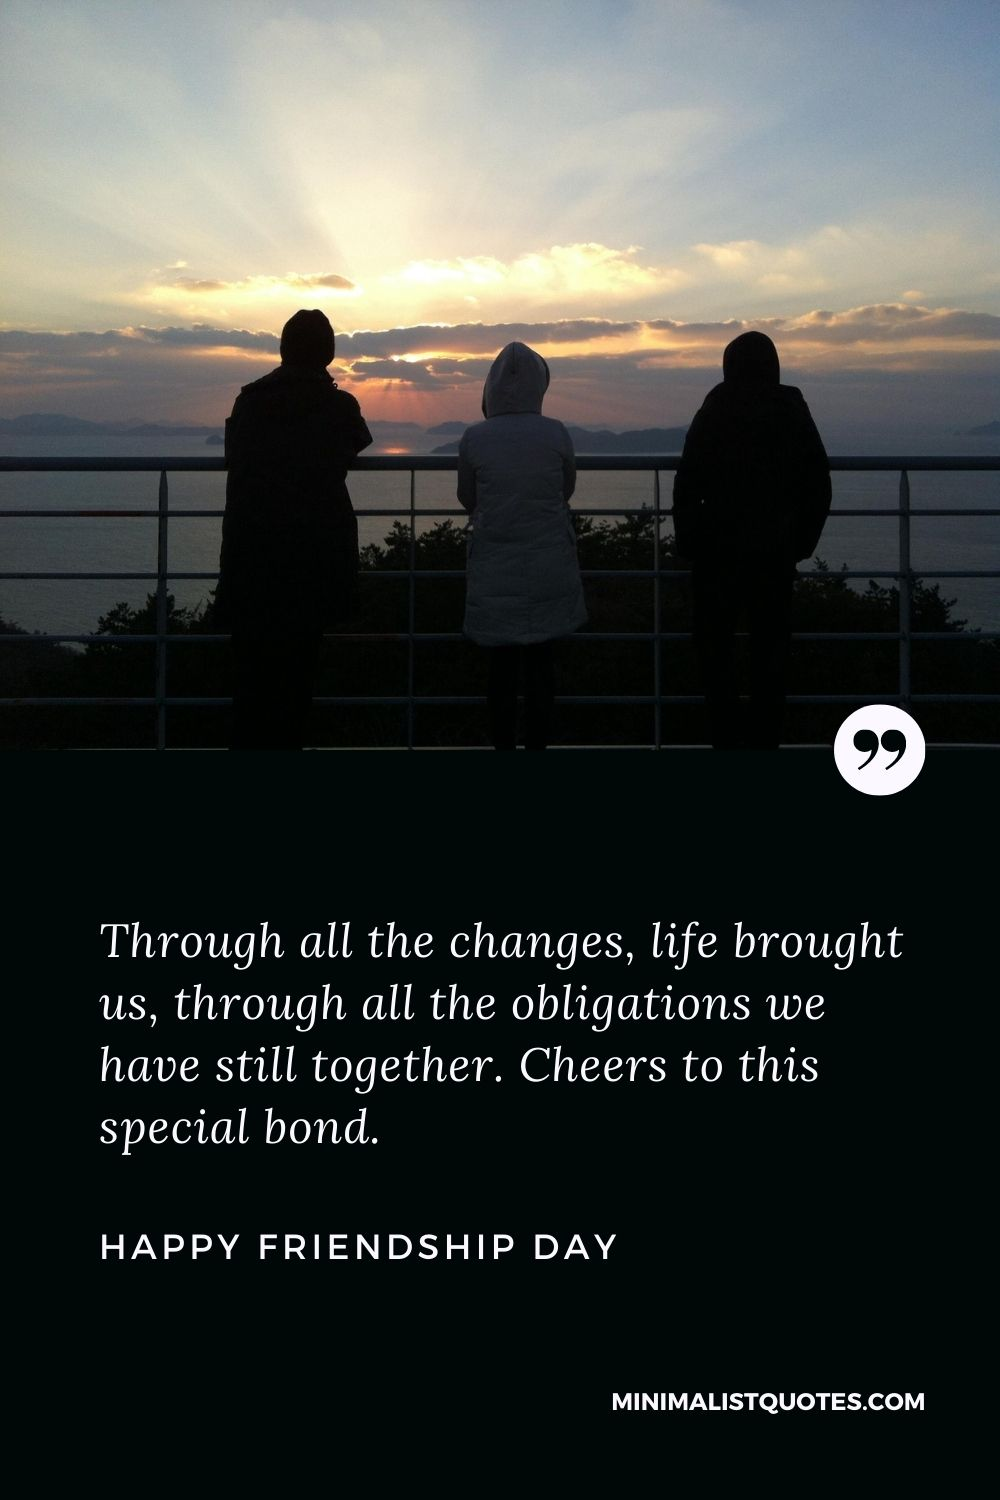 Friendship Day Wish - Through all the changes, life brought us, through all the obligations we have still together. Cheers to this special bond.